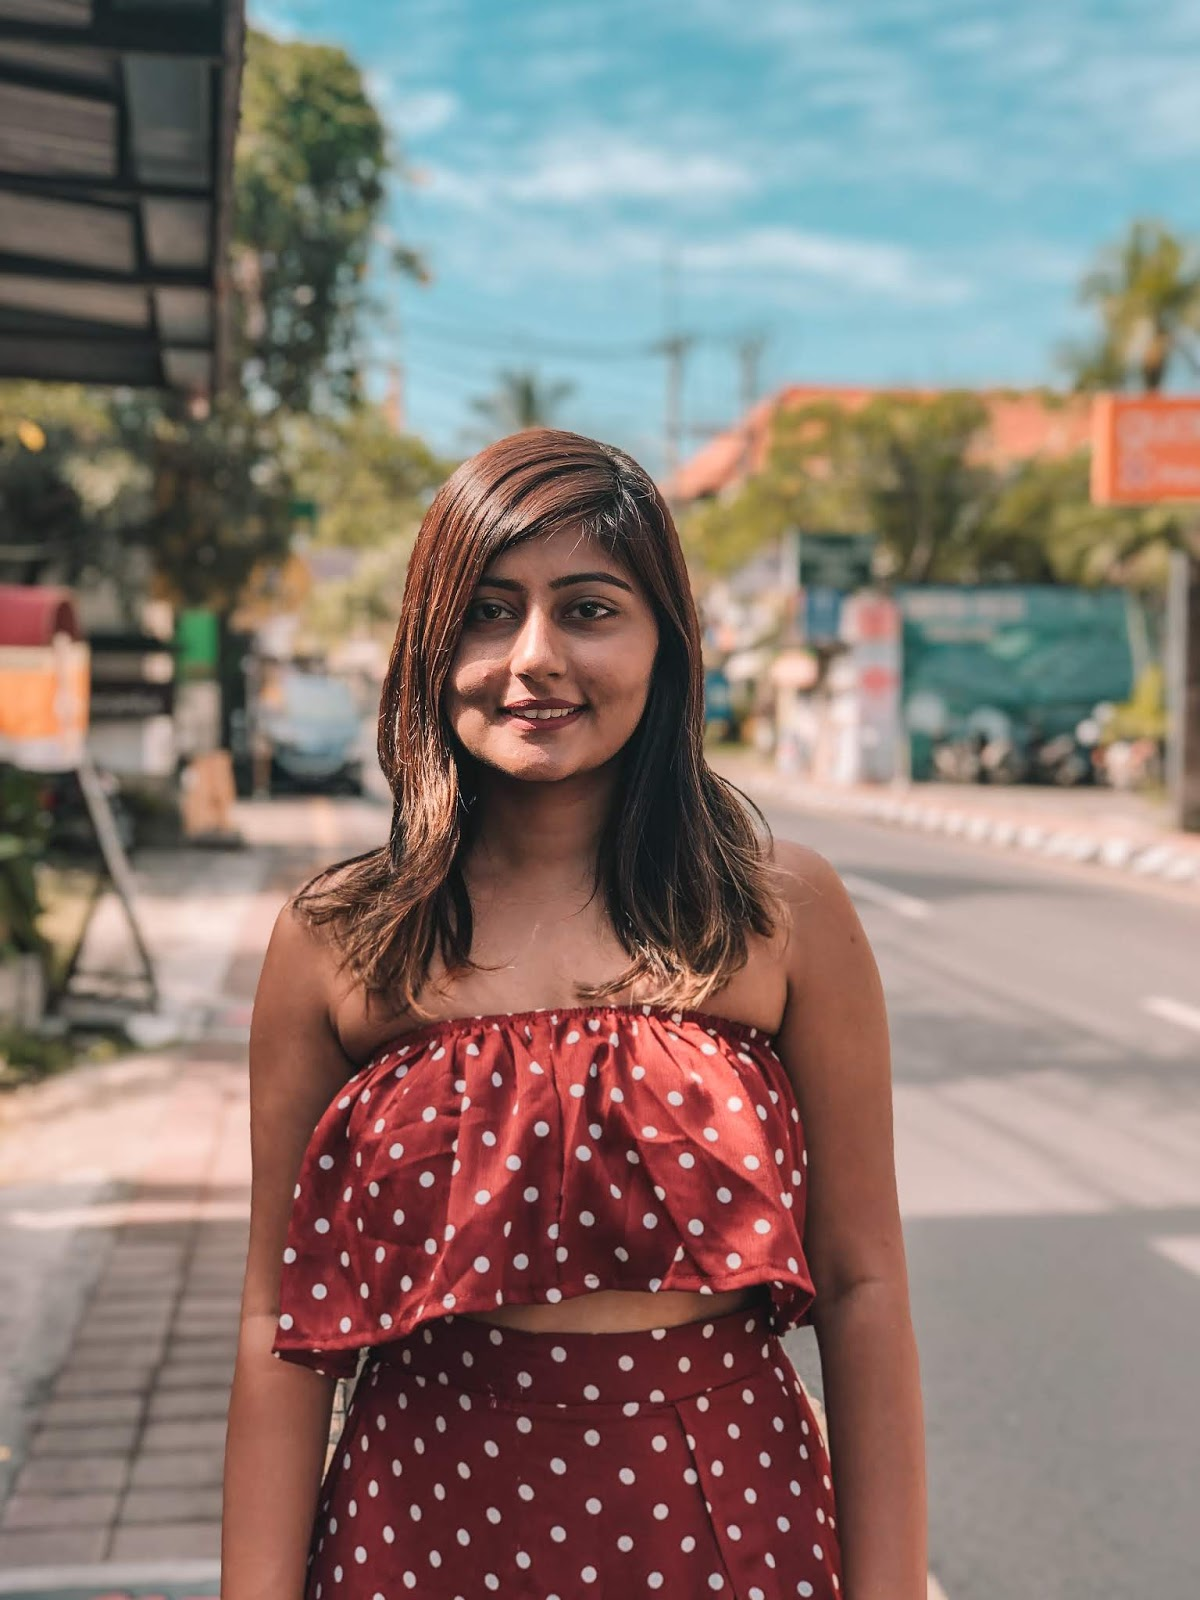 Kritika Goel is an Indian Youtuber and vlogger Top 5 travel youtuber in india by bgs raw